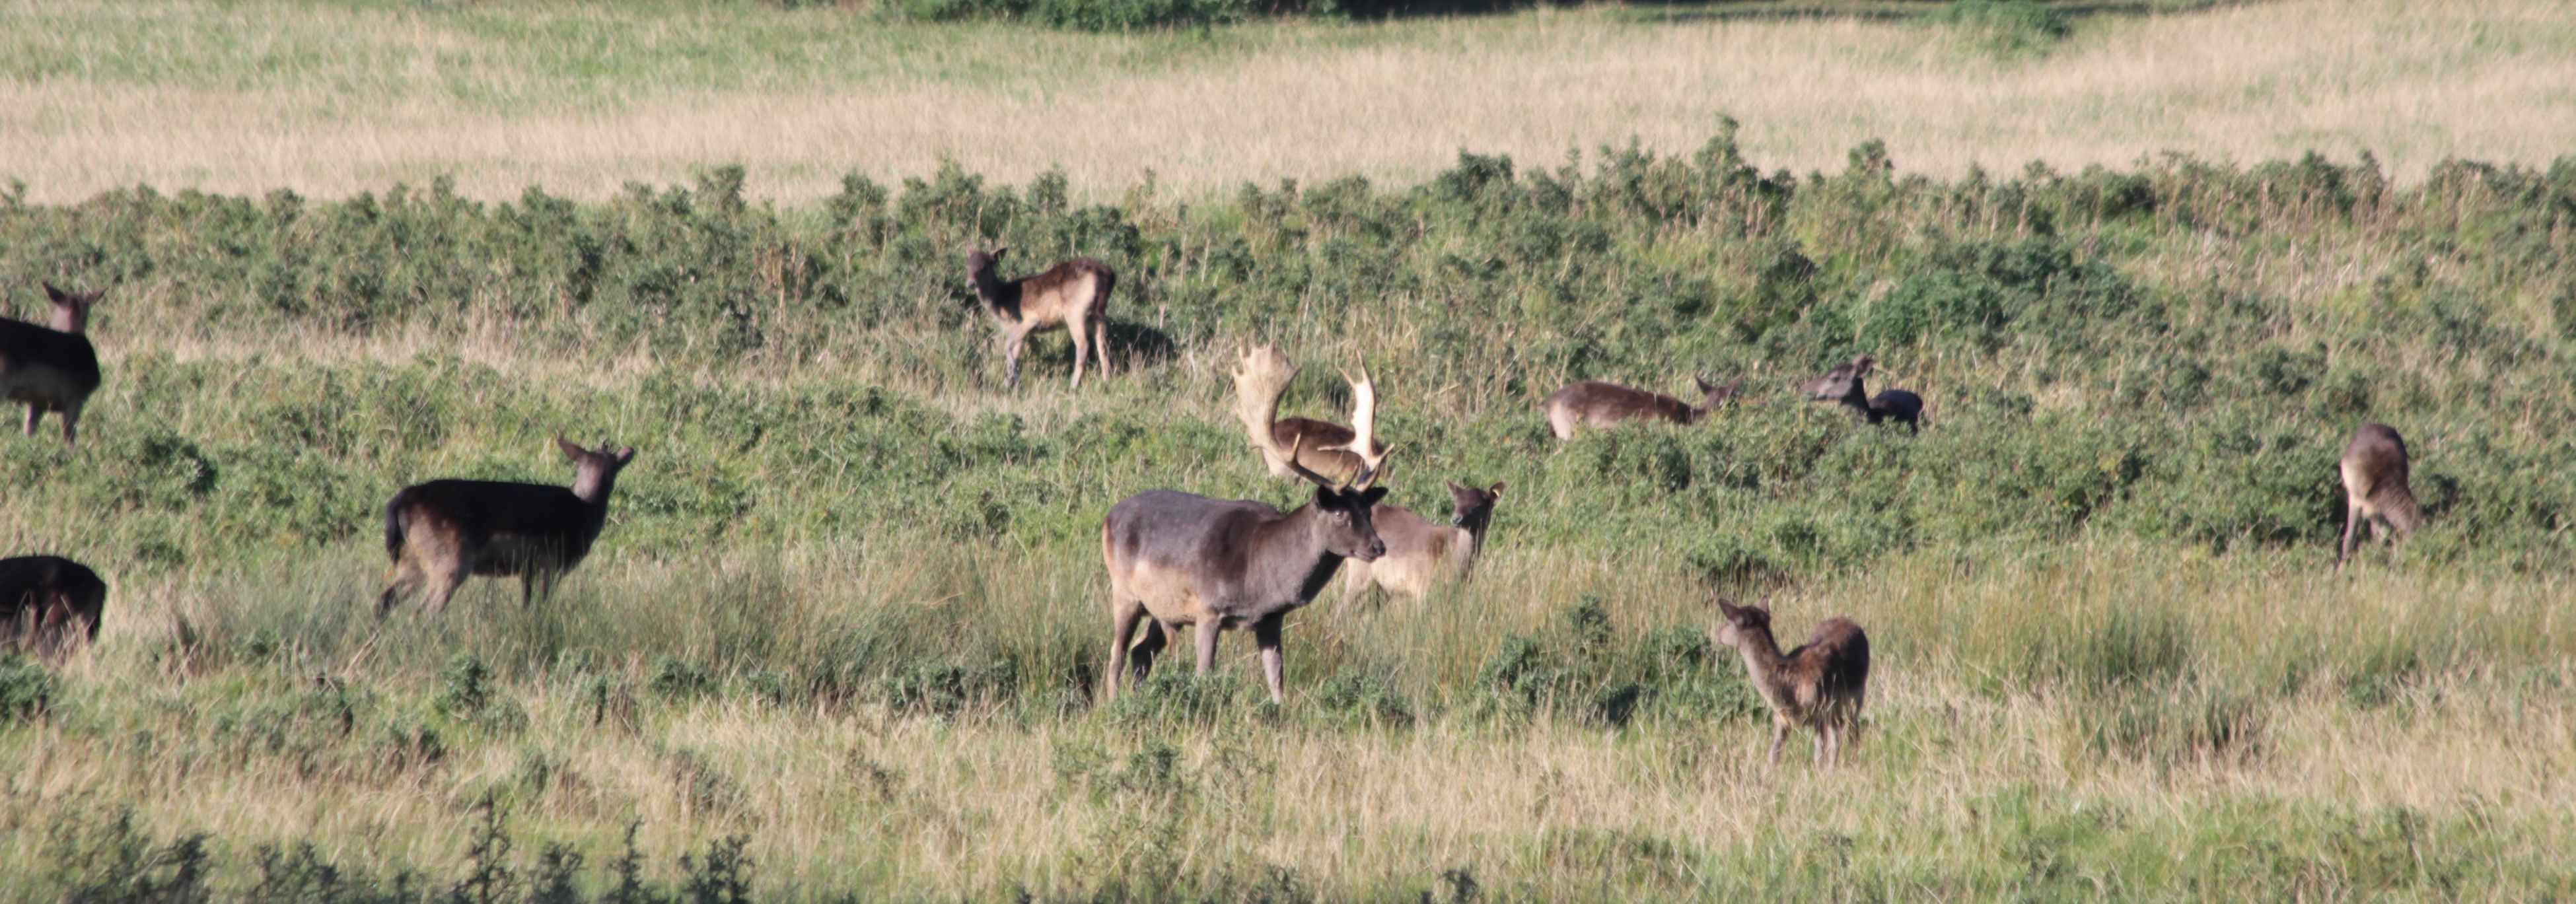 animal themes, grass, field, animals in the wild, wildlife, grazing, nature, landscape, grassy, herd, medium group of animals, livestock, growth, beauty in nature, rural scene, mammal, outdoors, day, no people